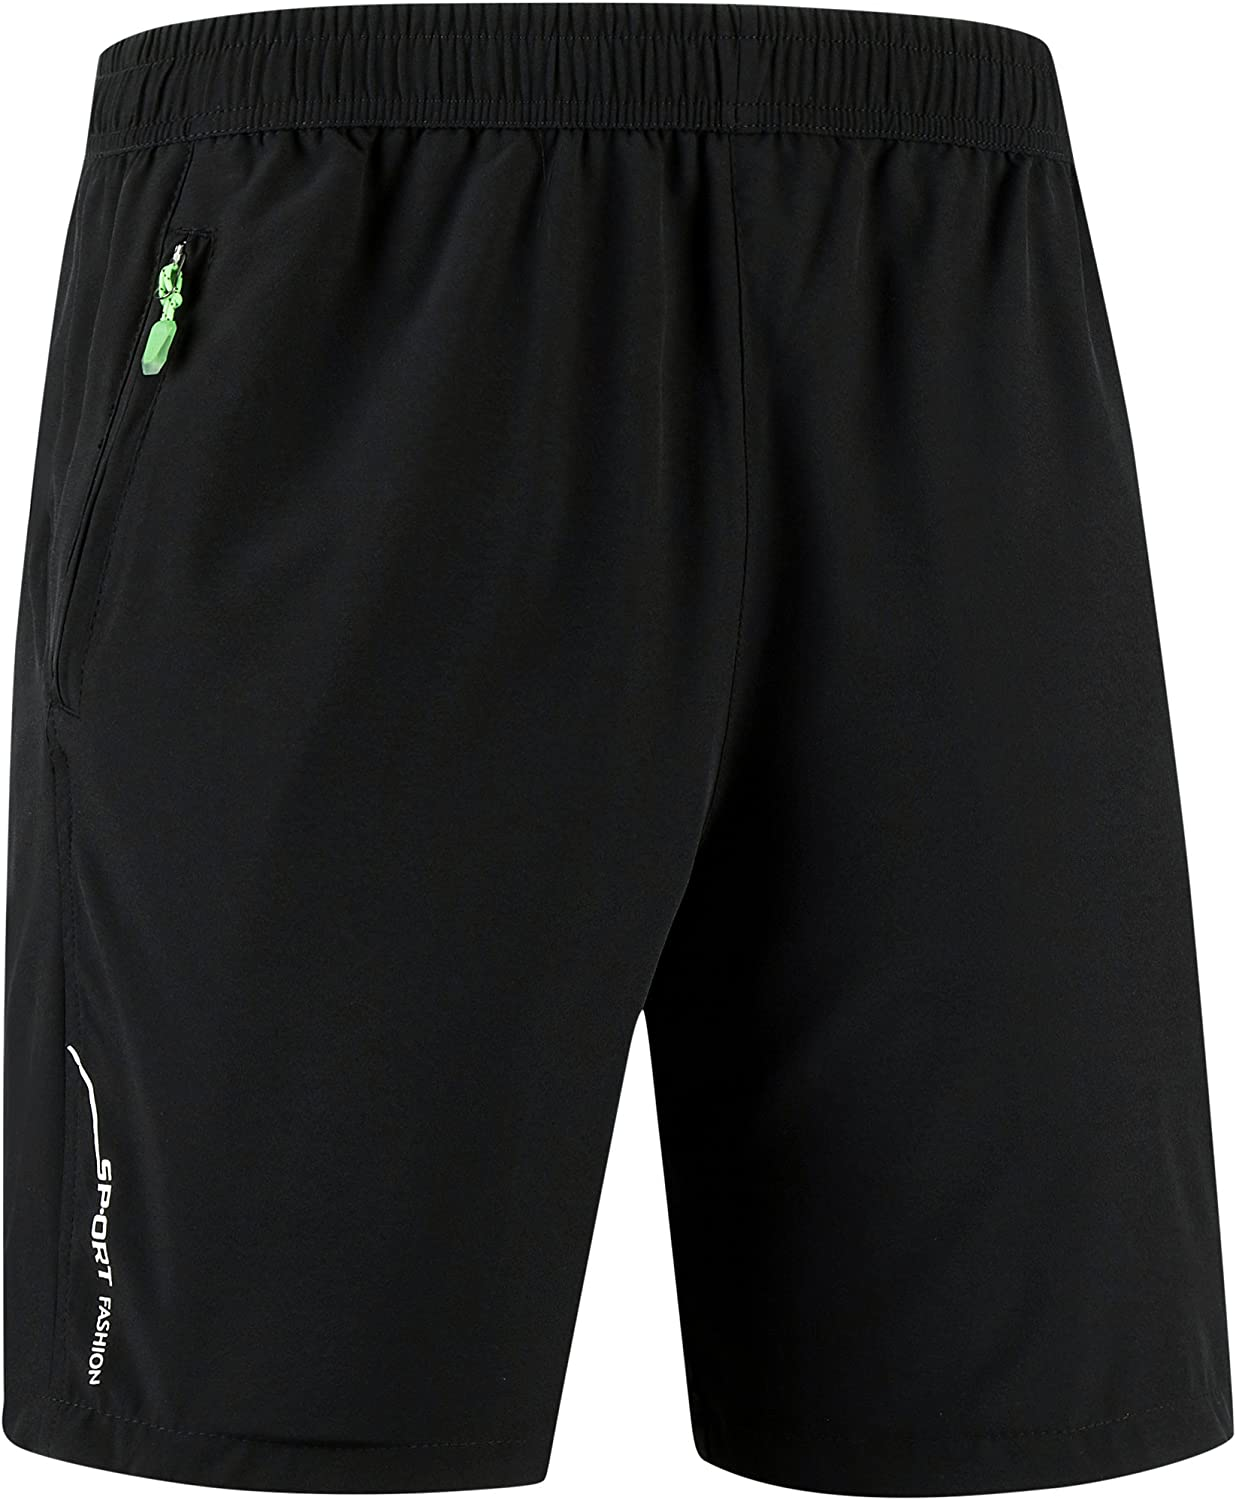 LancerPac Lightweight Womens Hiking Ranking integrated 1st place Popular overseas Shorts Dry Active Spor Quick